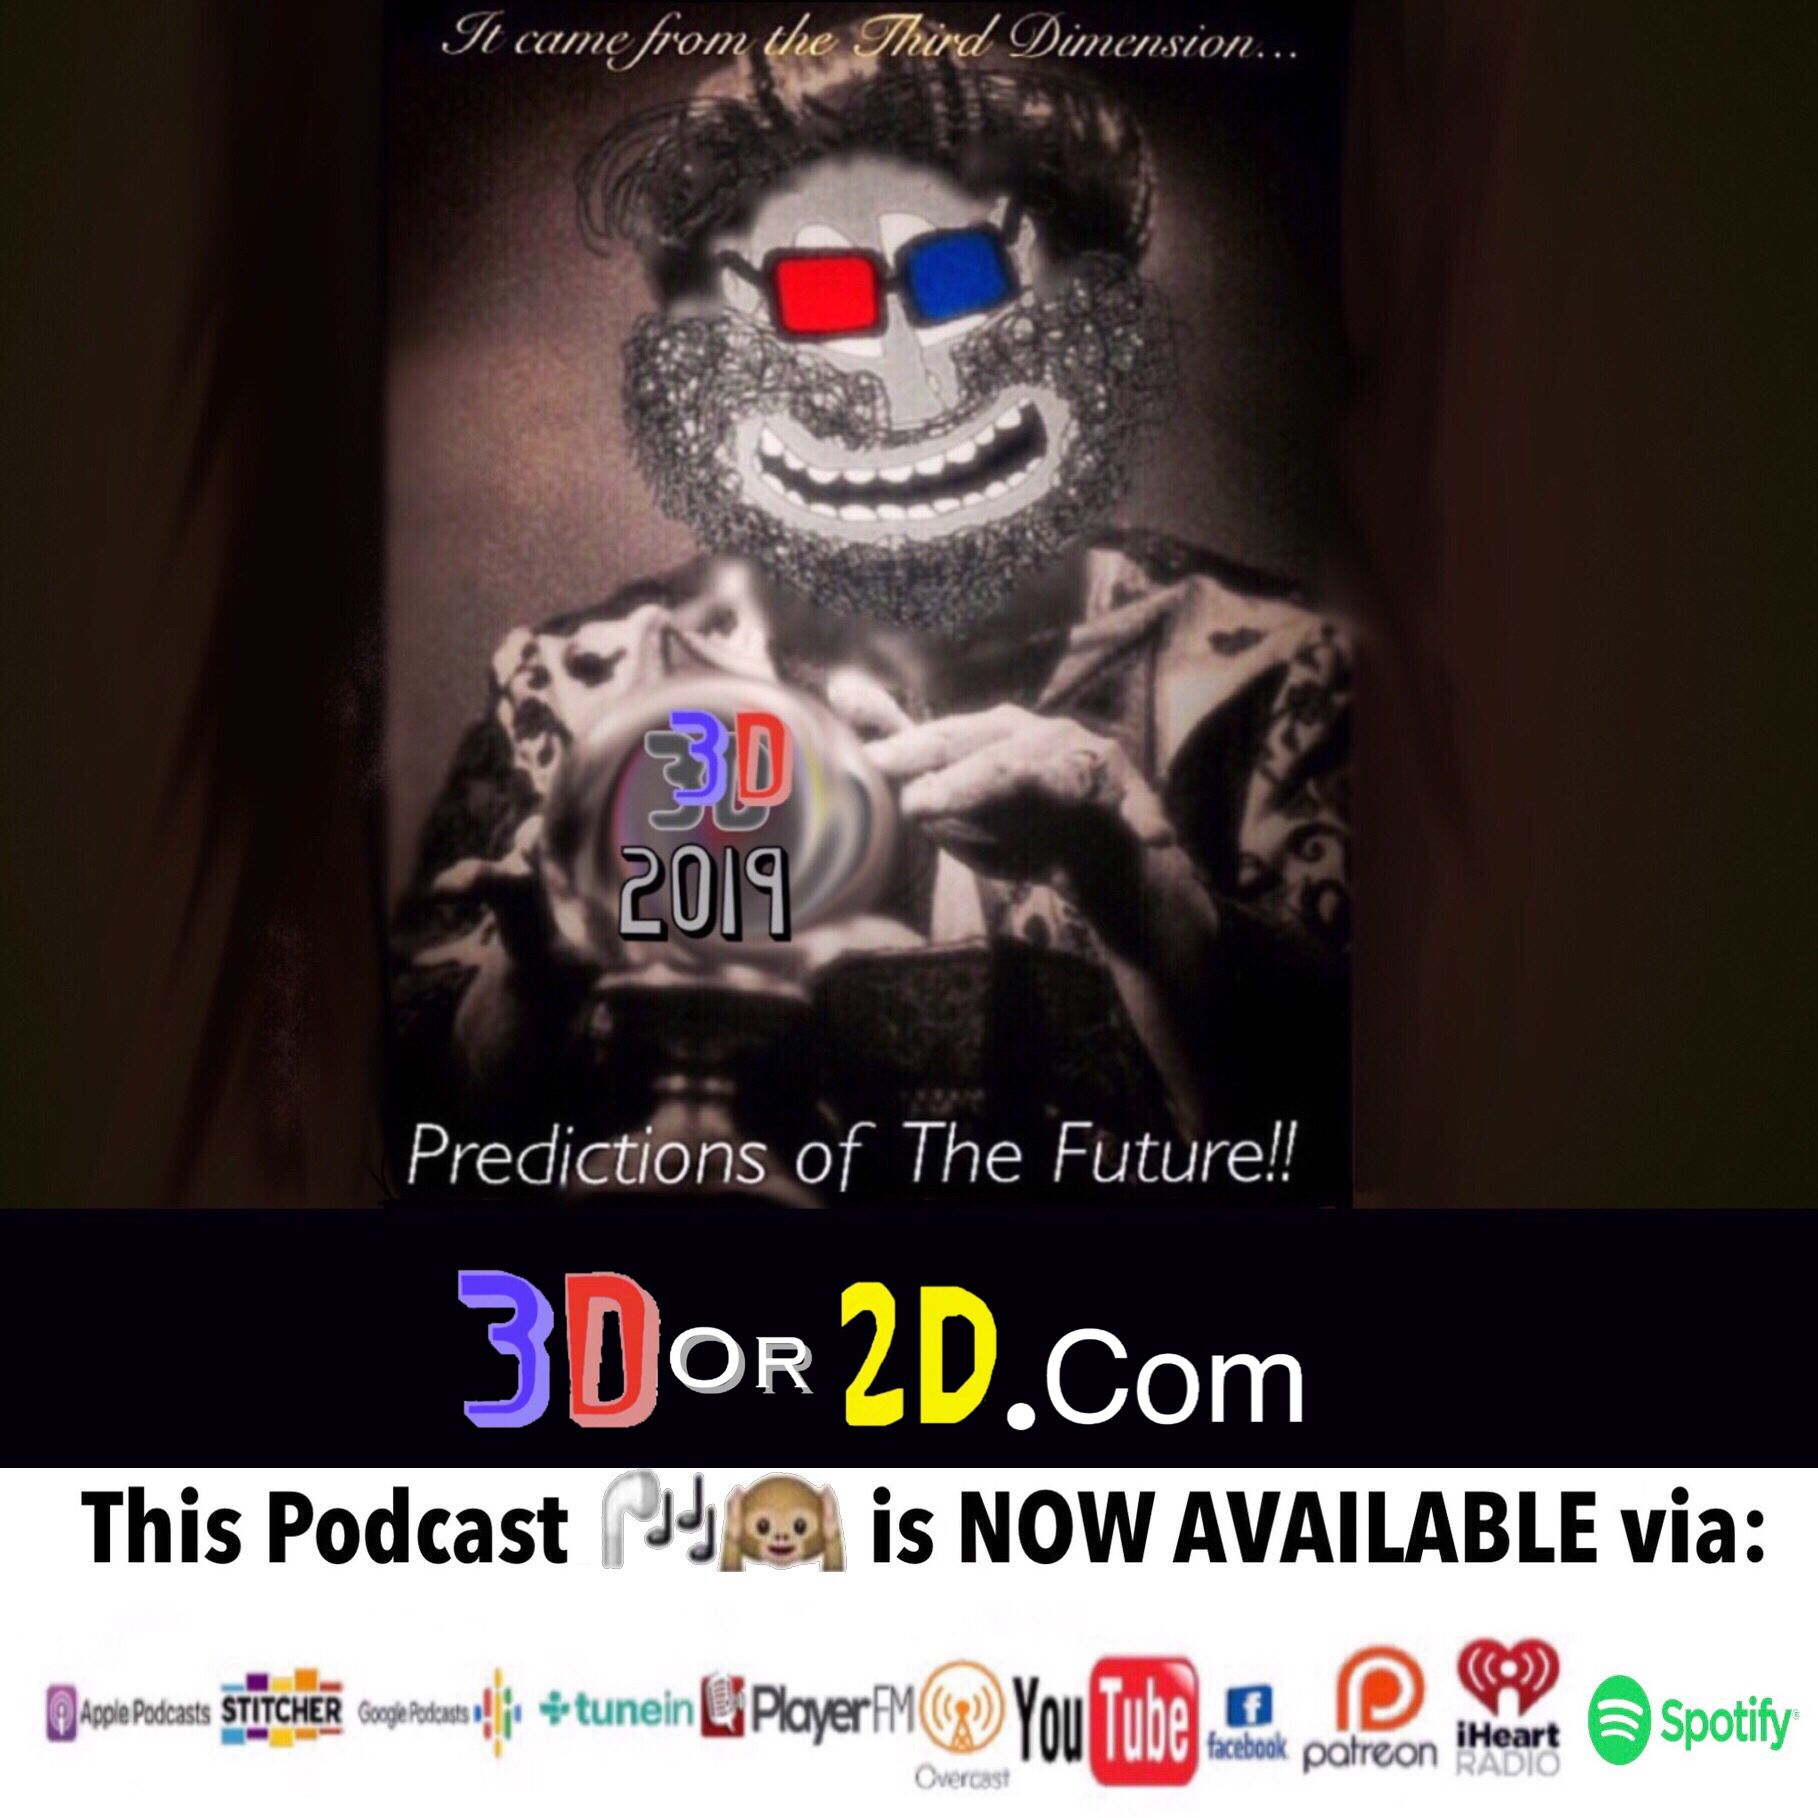 2019 3D Predictions Youtube, Insight, Fictional characters